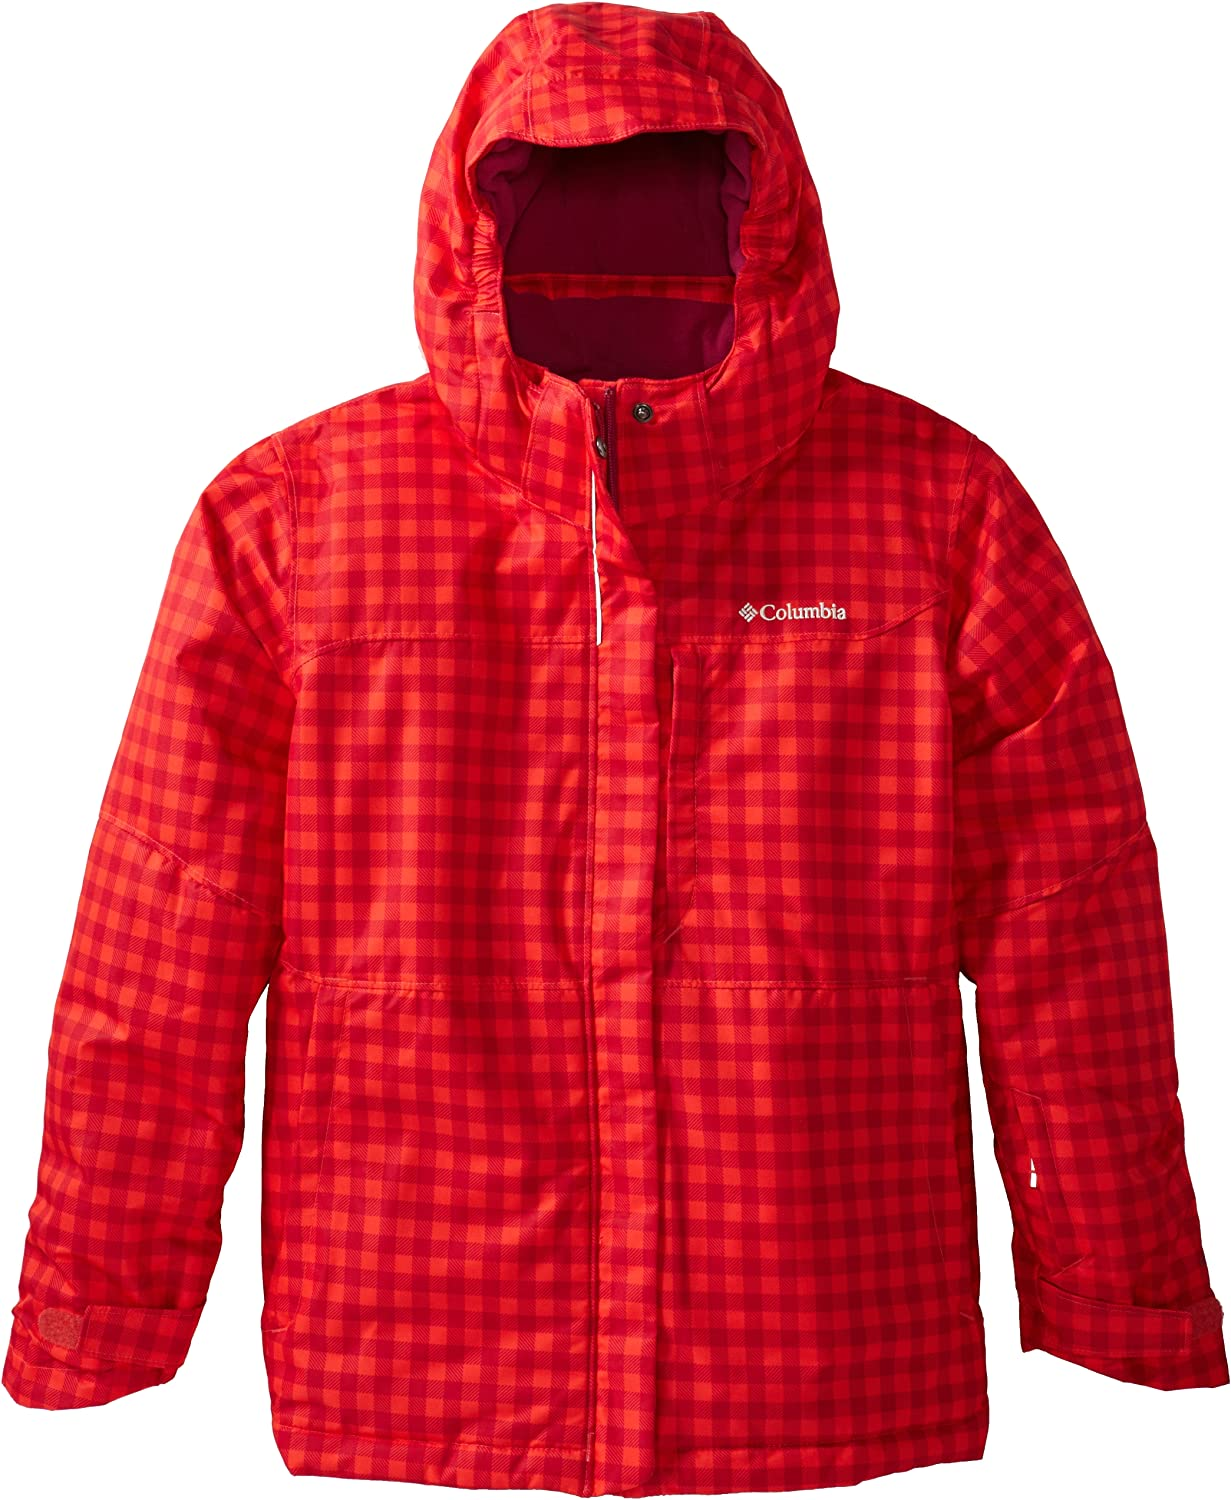 Columbia Girl's Nordic Price Max 73% OFF reduction Jacket Jump